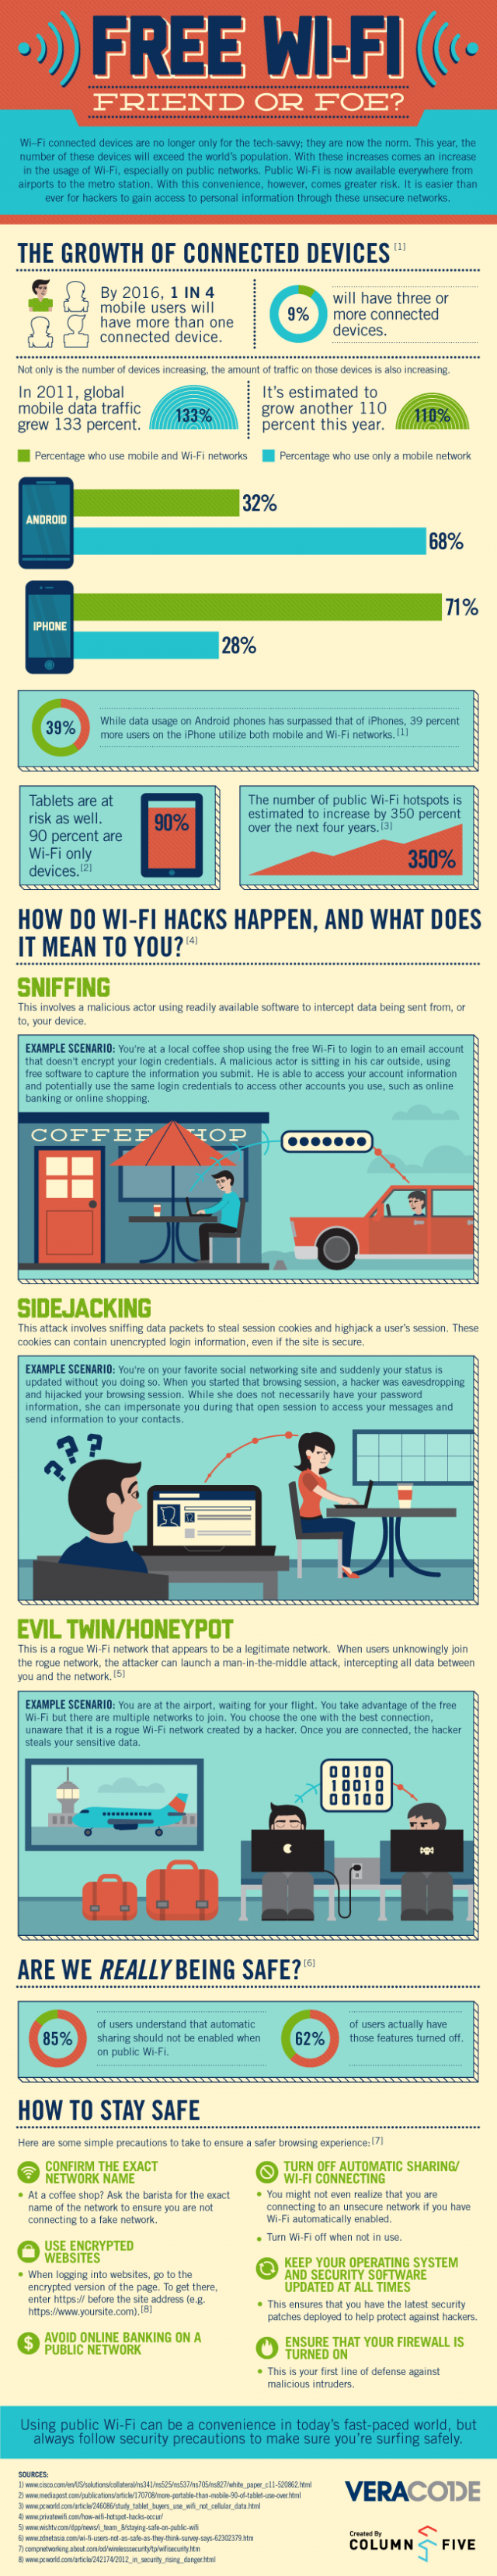 Free Wi-Fi: Friend or Foe (Infographic)